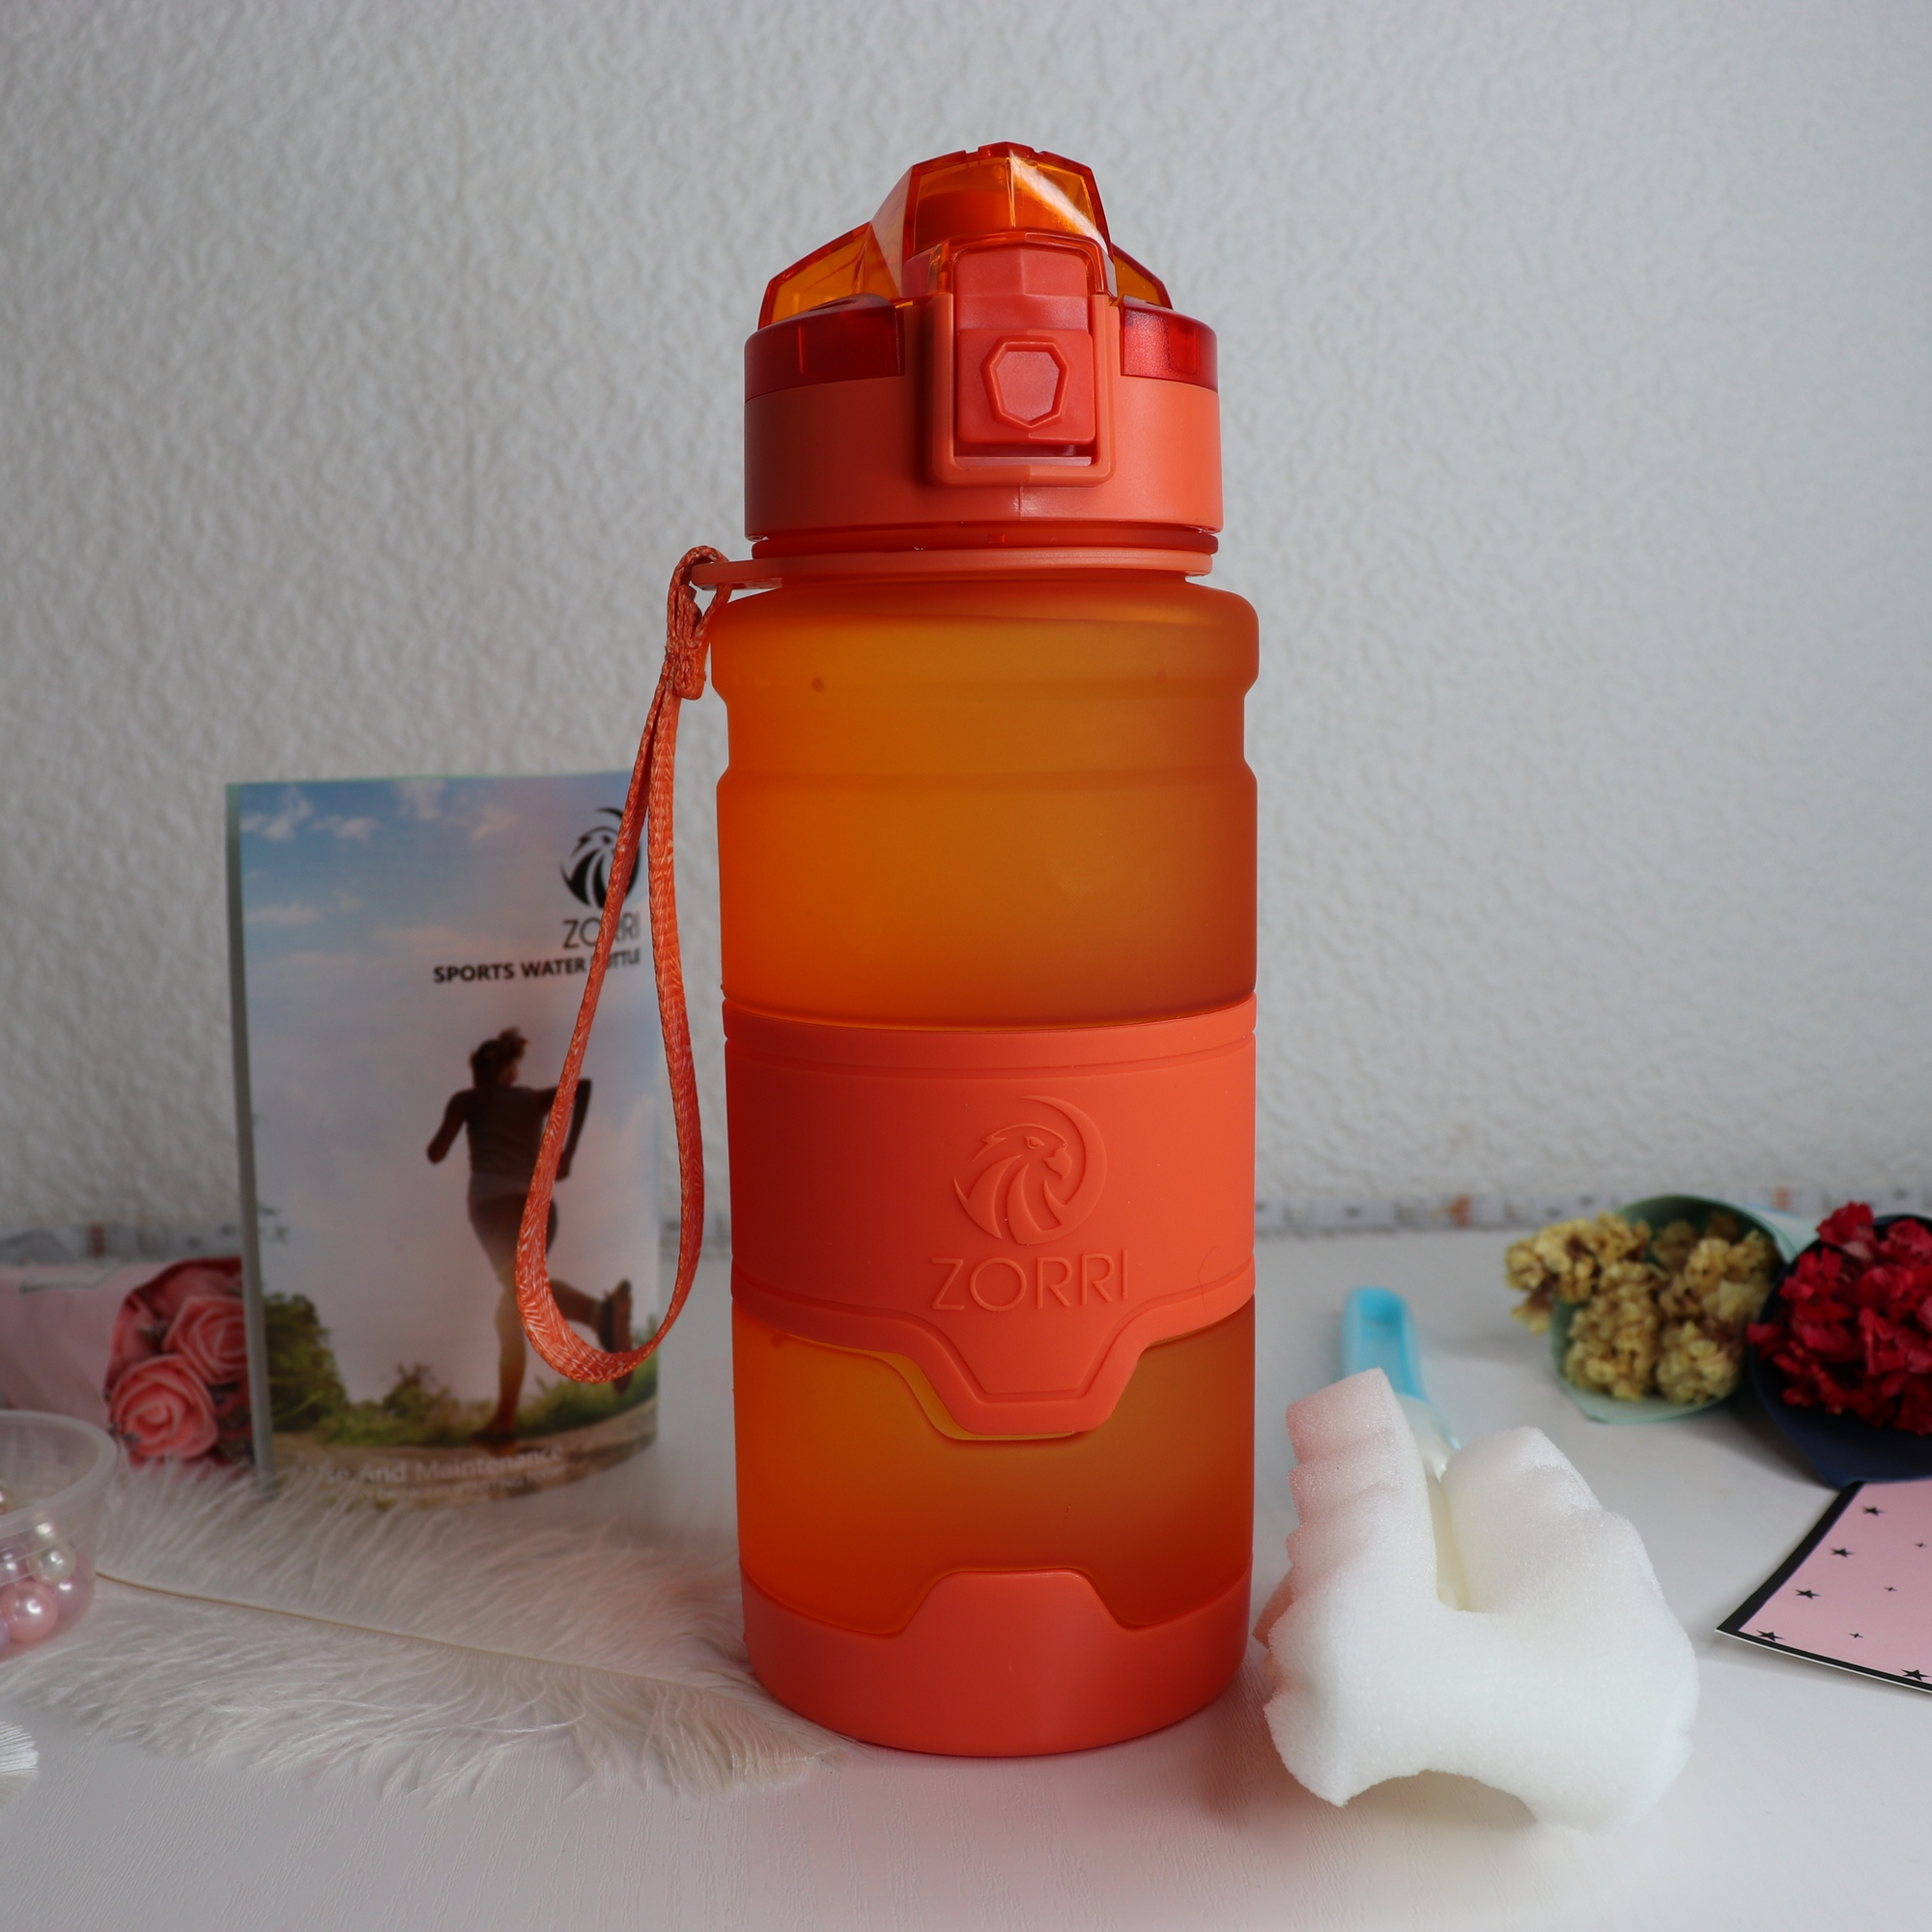 Best Sport Water Bottle TRITAN Copolyester Plastic Material Bottle Fitness School Yoga For Kids/Adults Water Bottles With Filter|Water Bottles| |  - AliExpress